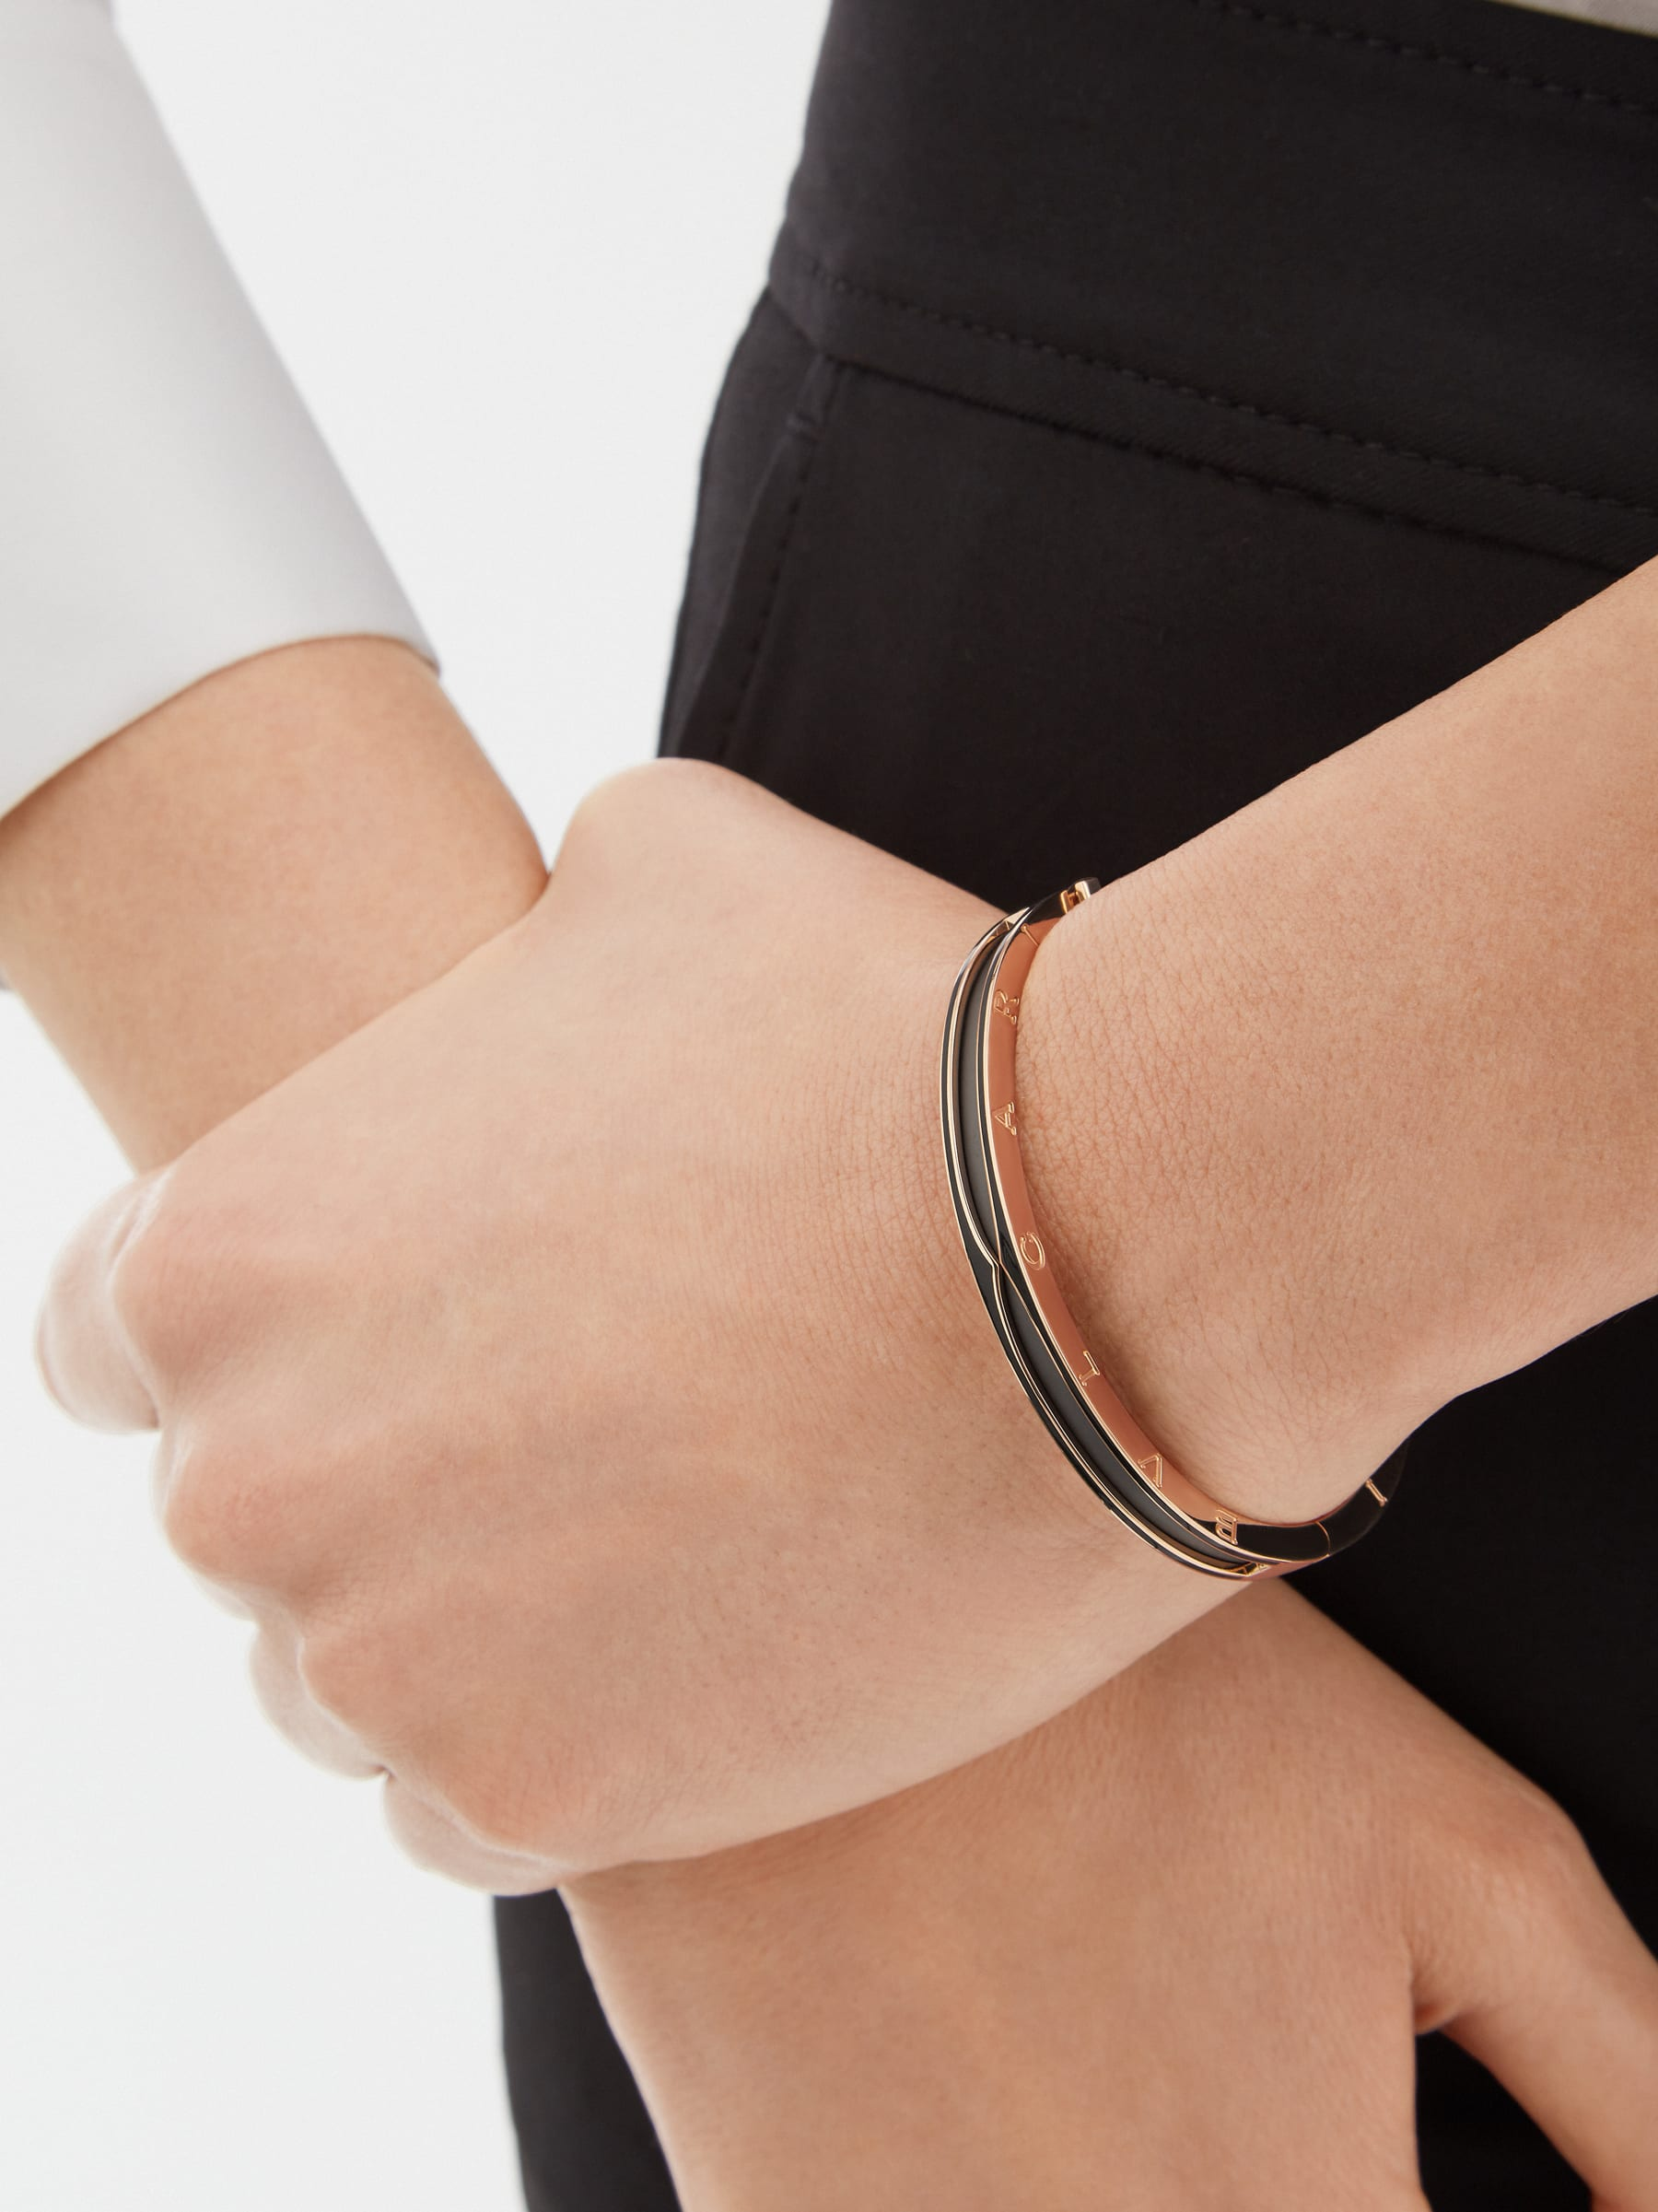 B.zero1 bracelet in 18 kt rose gold with matte black ceramic BR859063 image 4